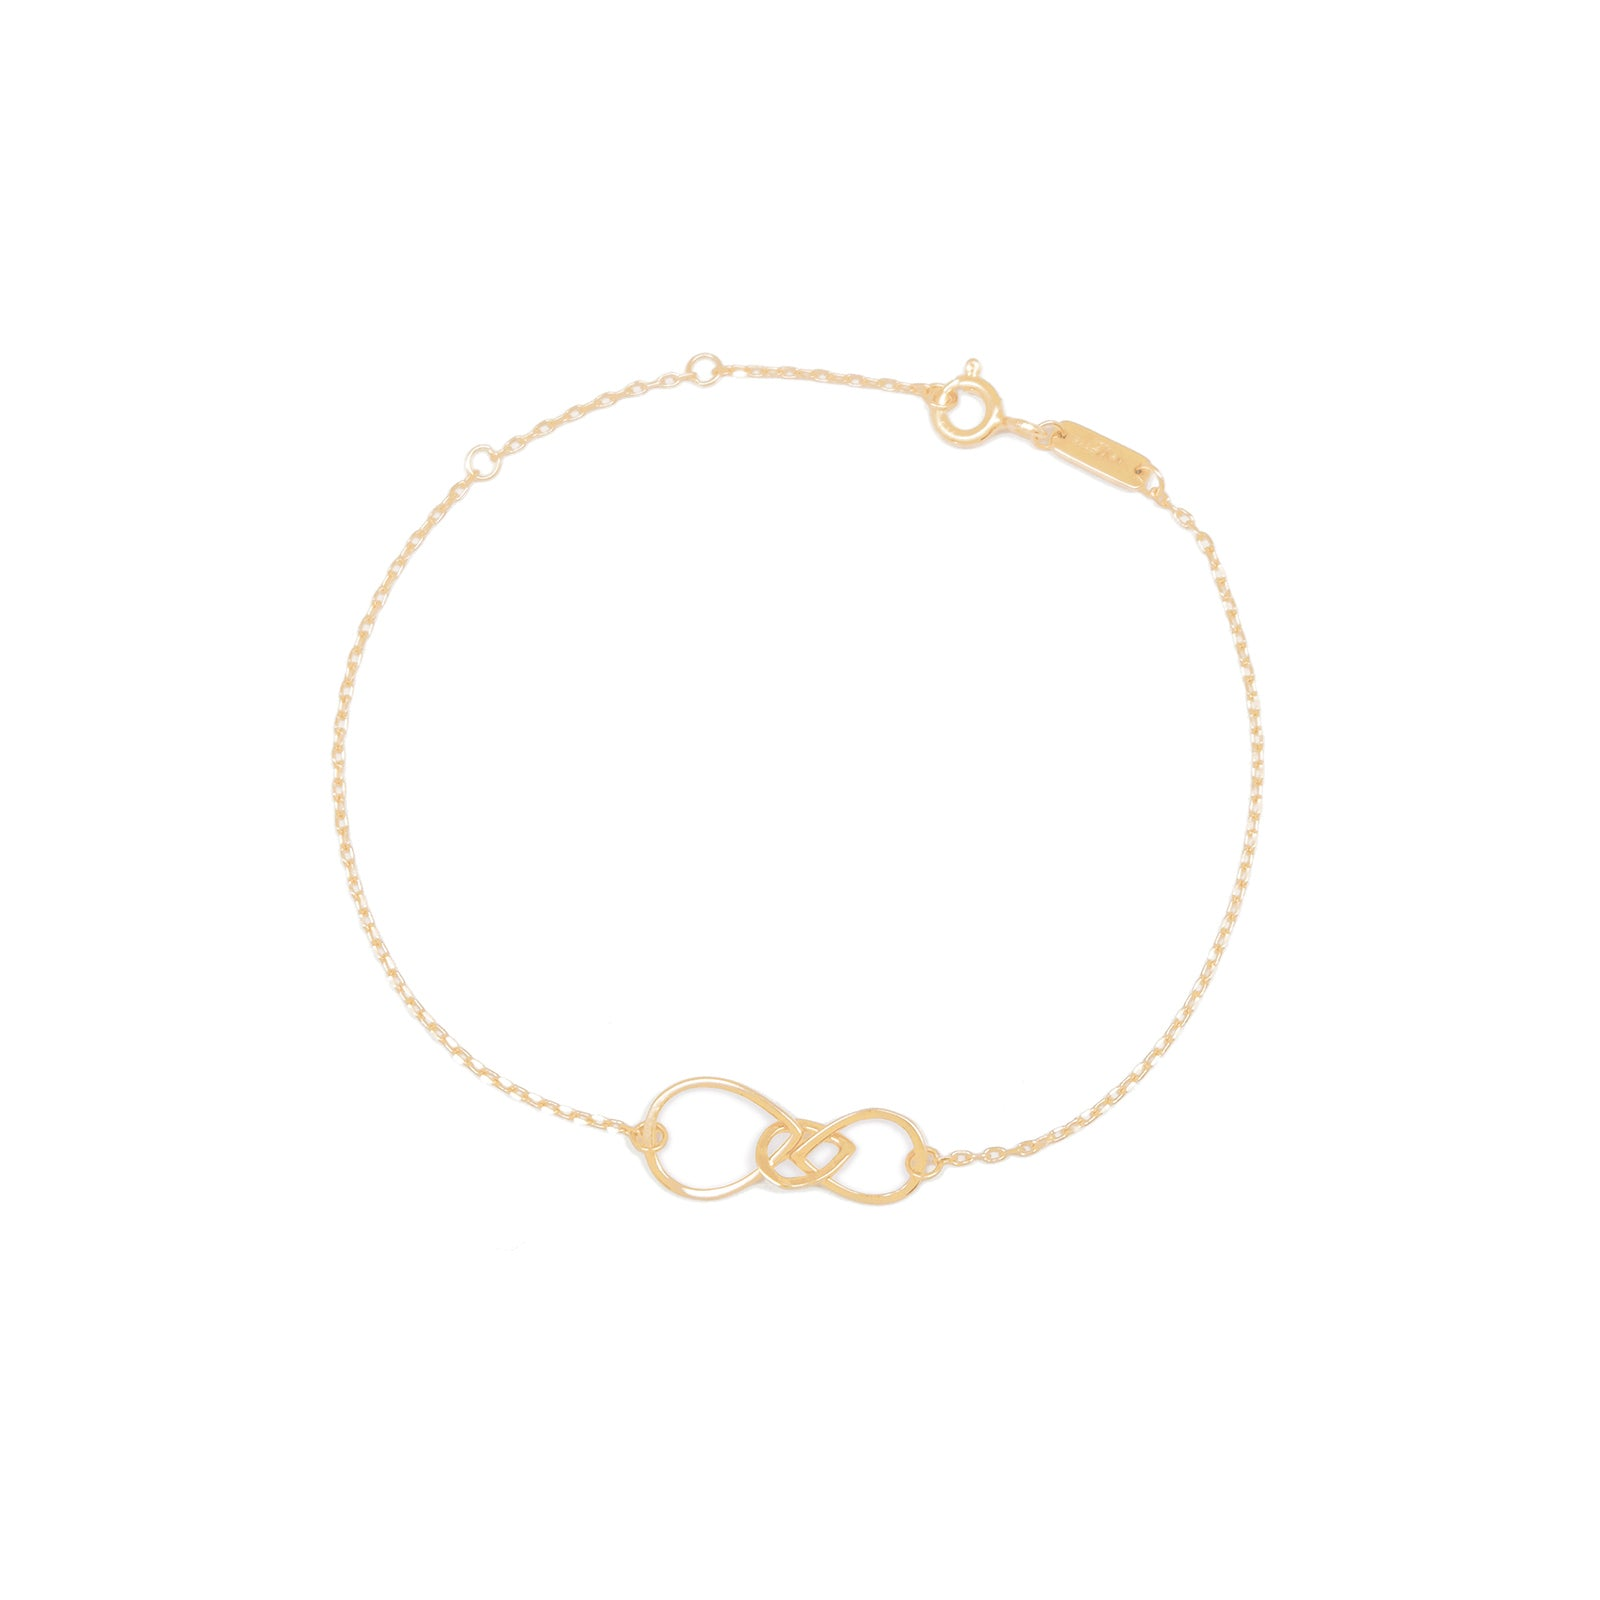 dainty product daintyedgejewellery jewellery com hollow notonthehighstreet karma by edge bracelet original